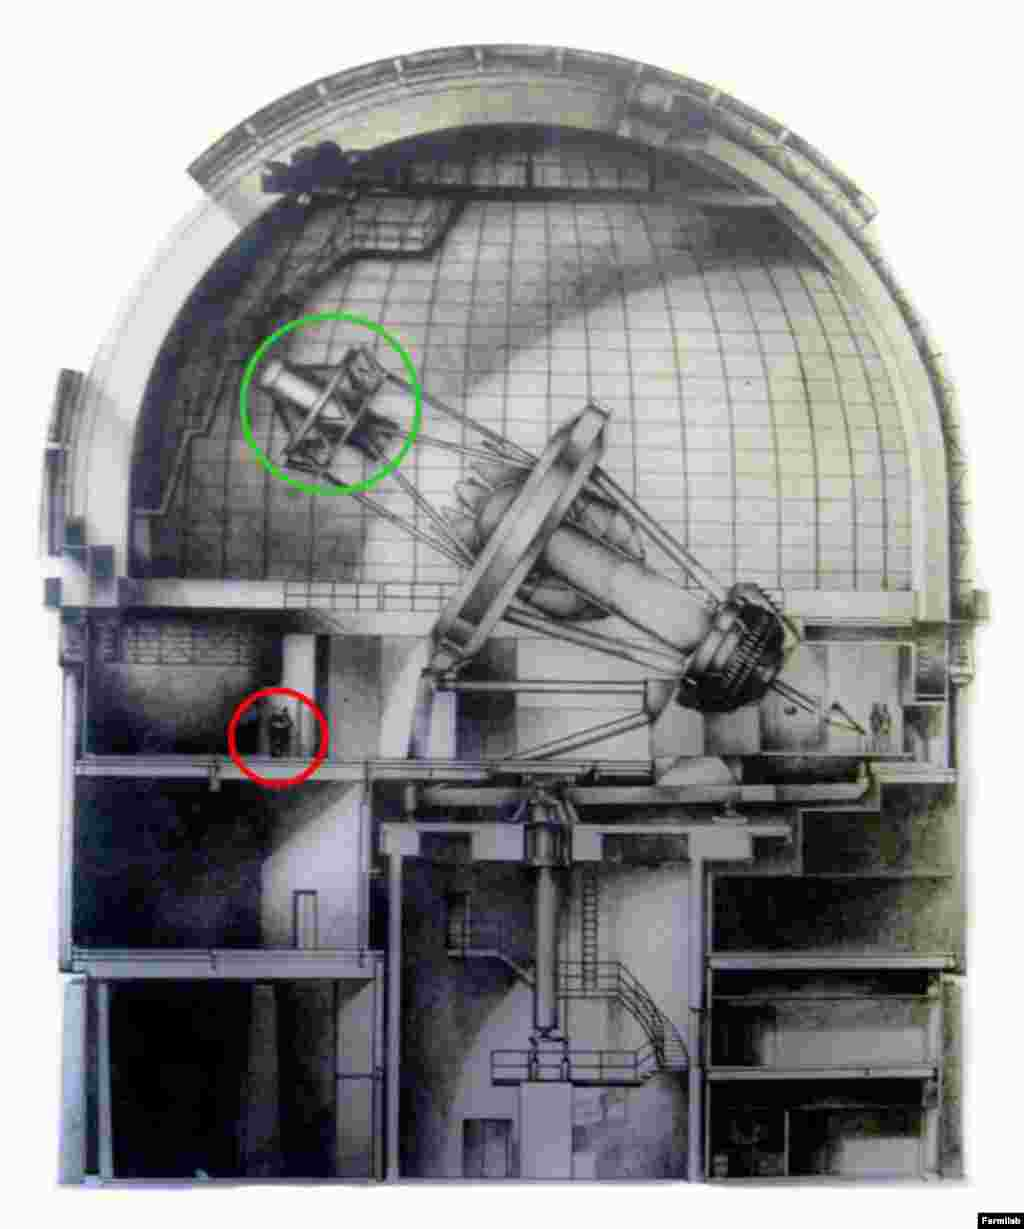 The 4-meter Blanco telescope. The green circle marks the location of the prime focus cage where the Dark Energy Camera will be mounted.